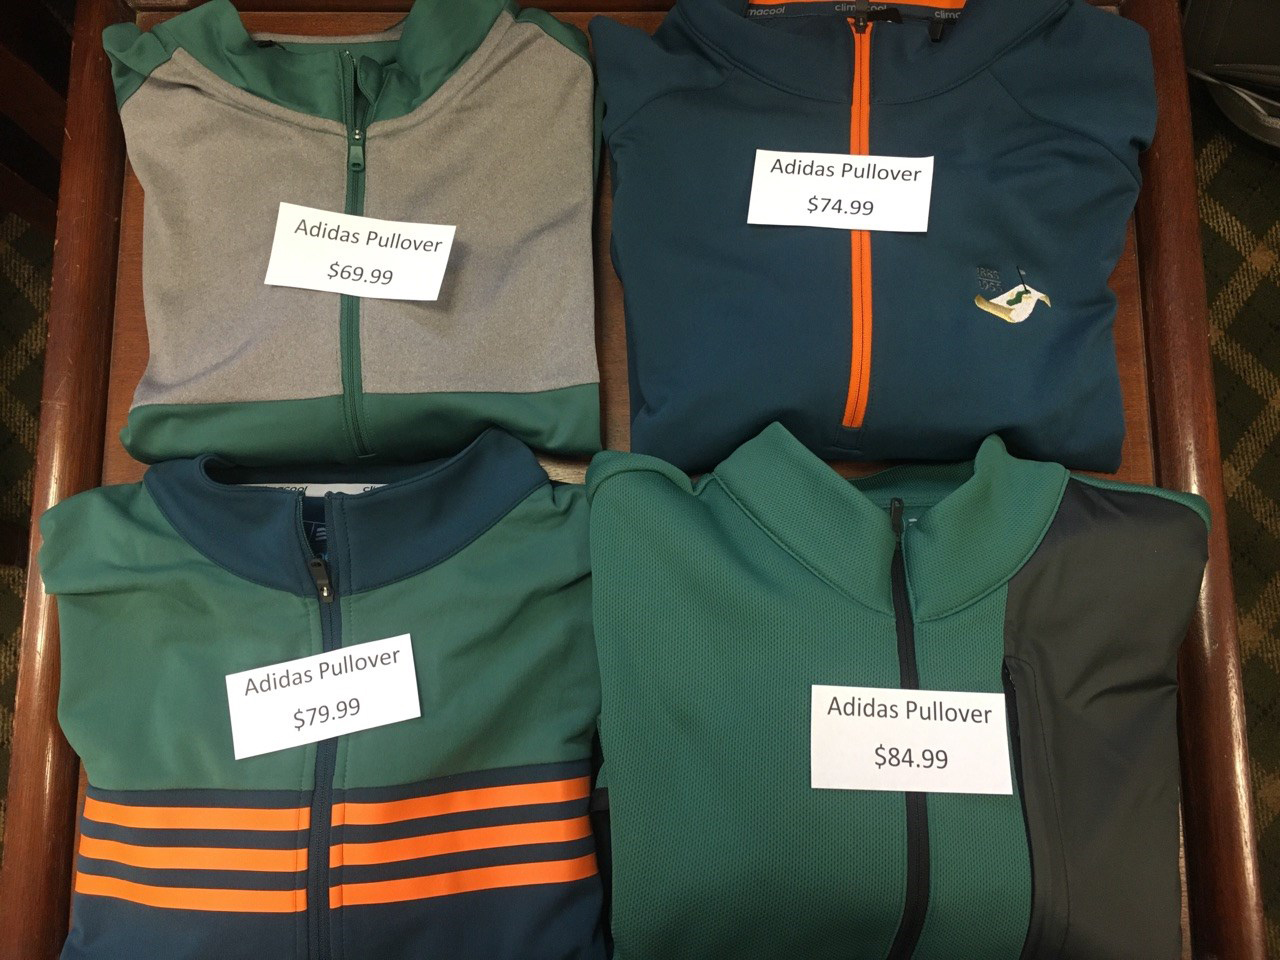 Pullovers:$69.99 - $84.99